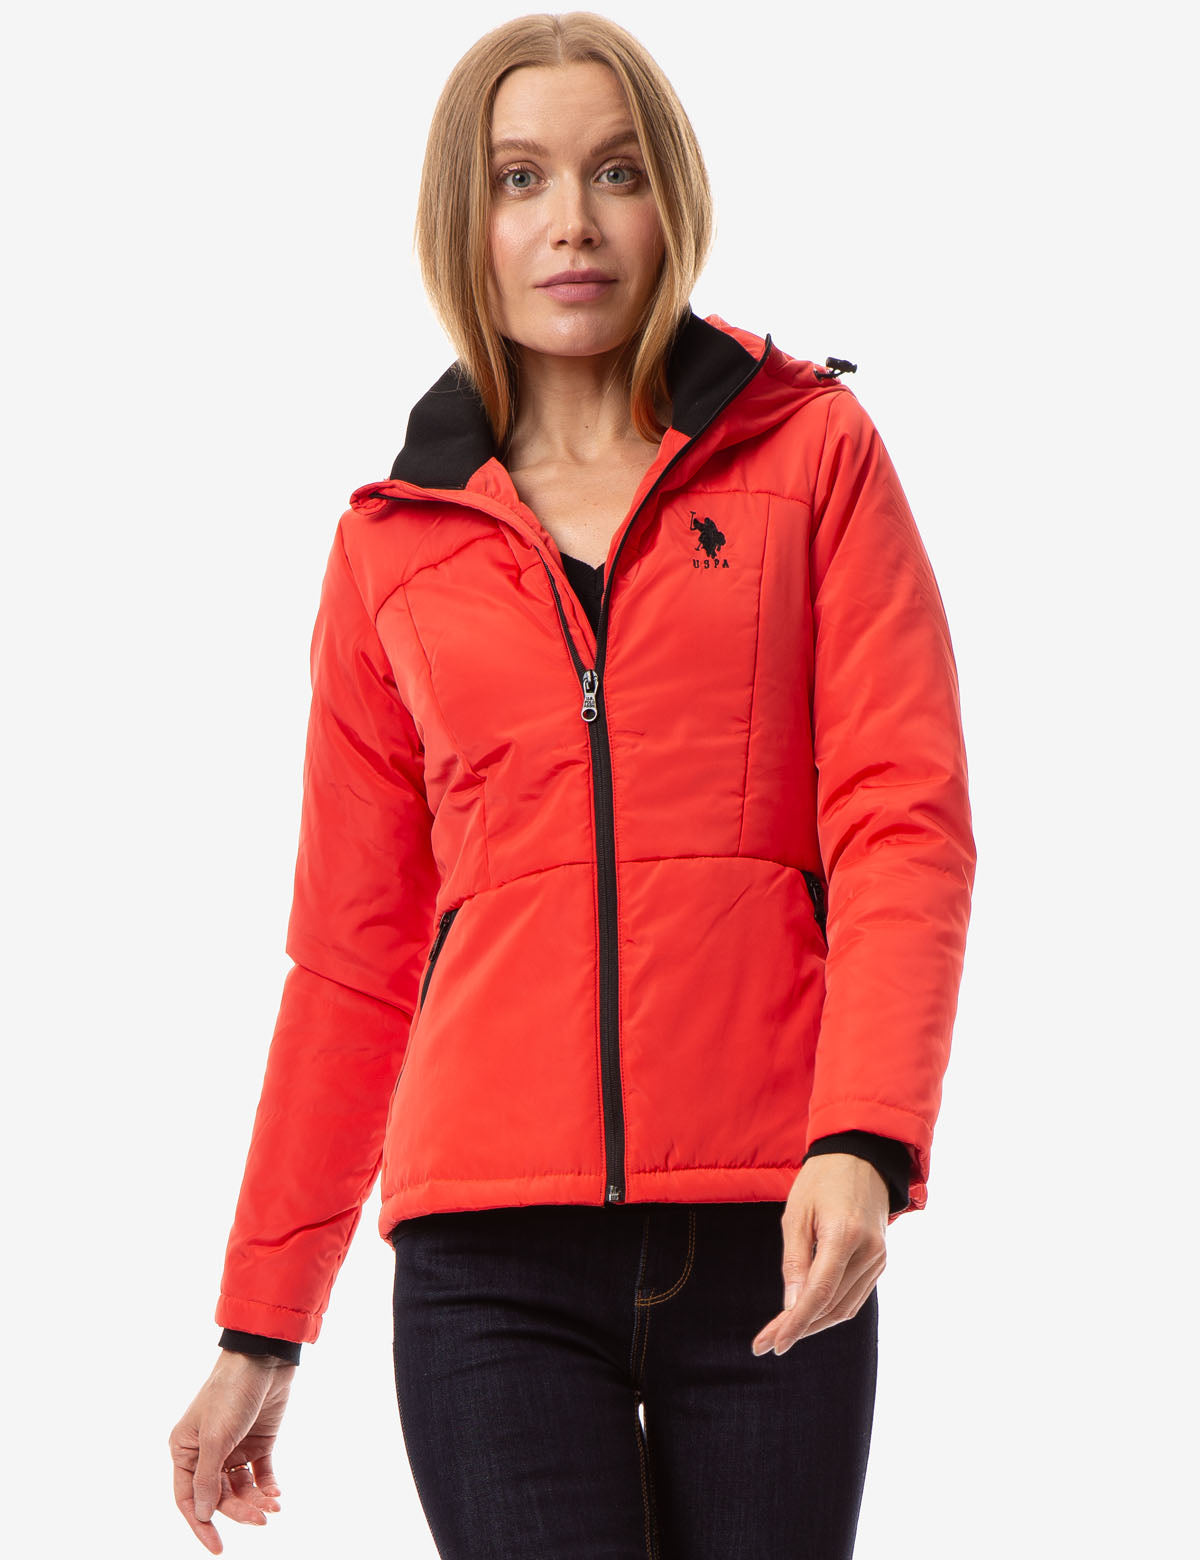 SOLID FLEECE JACKET - U.S. Polo Assn.